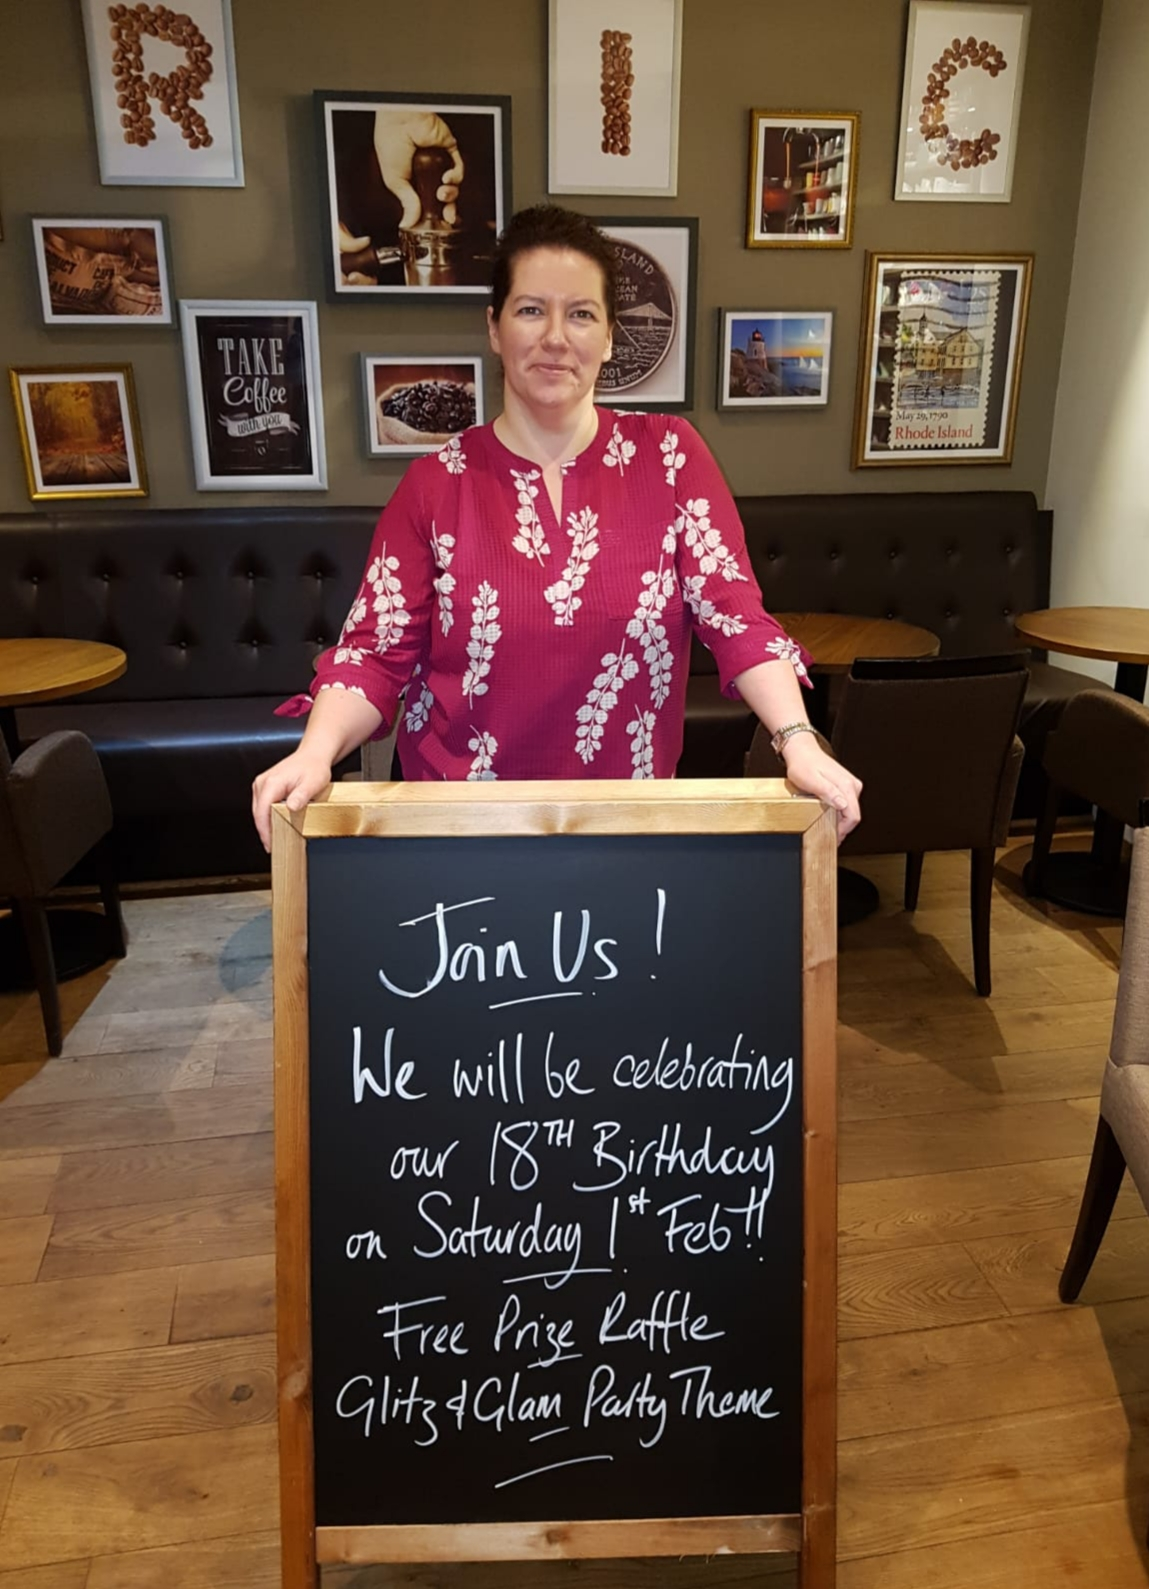 Come and join Rhode Island Coffee to celebrate their 18th birthday